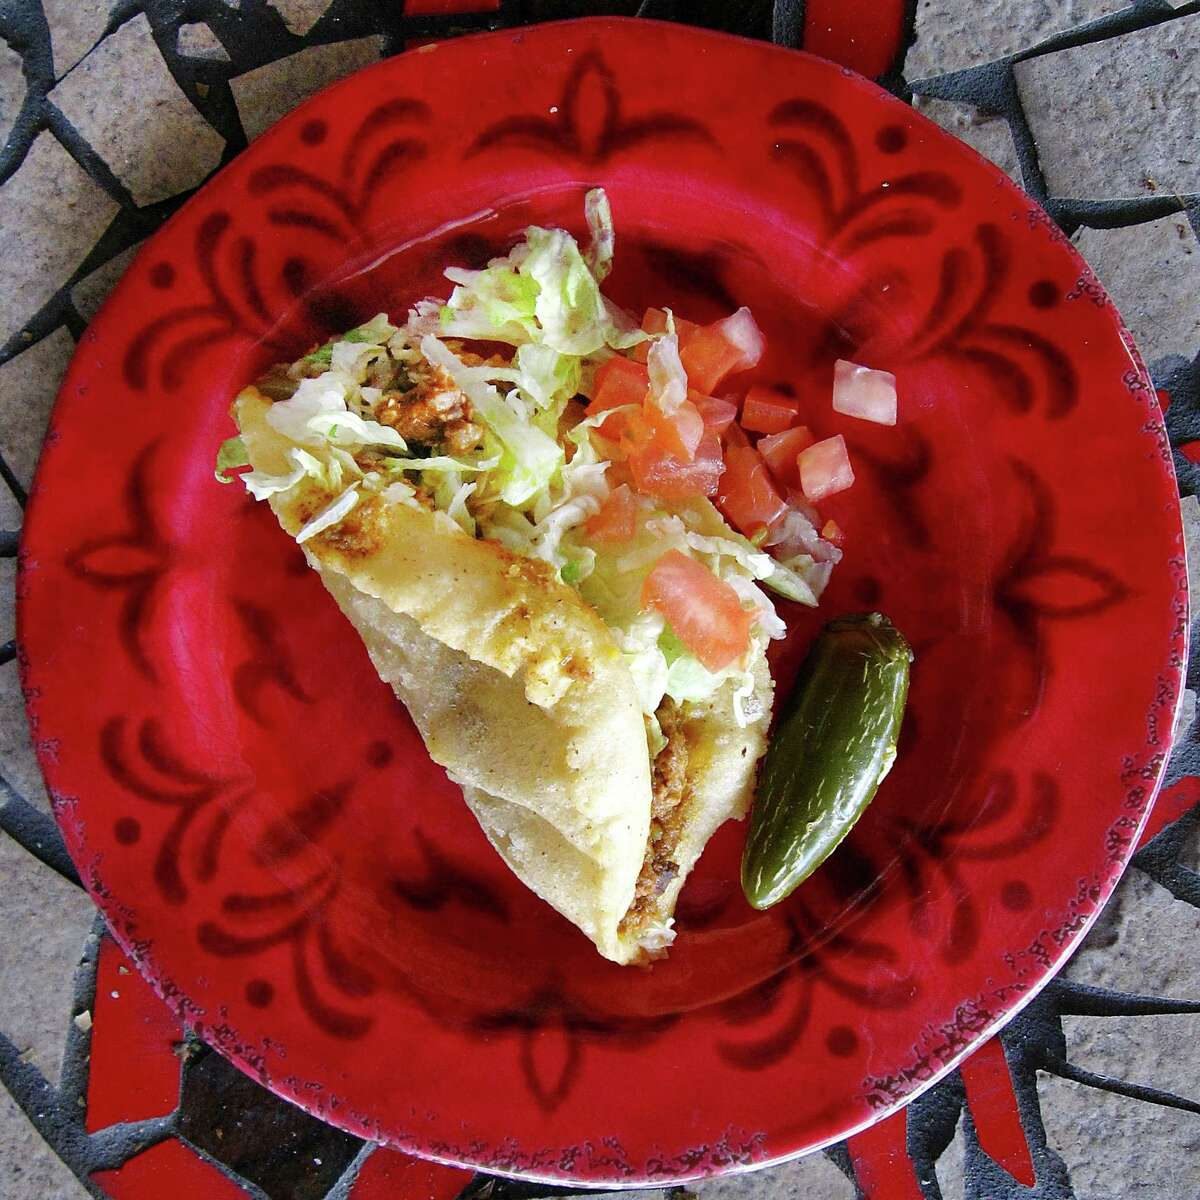 Ray's Drive-Inn: Puffy taco with beef  822 SW 19th St. Rating: Worth a drive With its broad carport awning, Ray's combines American drive-up car culture with the low-ceilinged feel of a country diner with good tacos, fried chicken and corn tortilla Crispy Dogs. Best taco: Puffy taco with beef. 822 SW 19th St., 210-432-7171, Facebook: Ray's Drive Inn